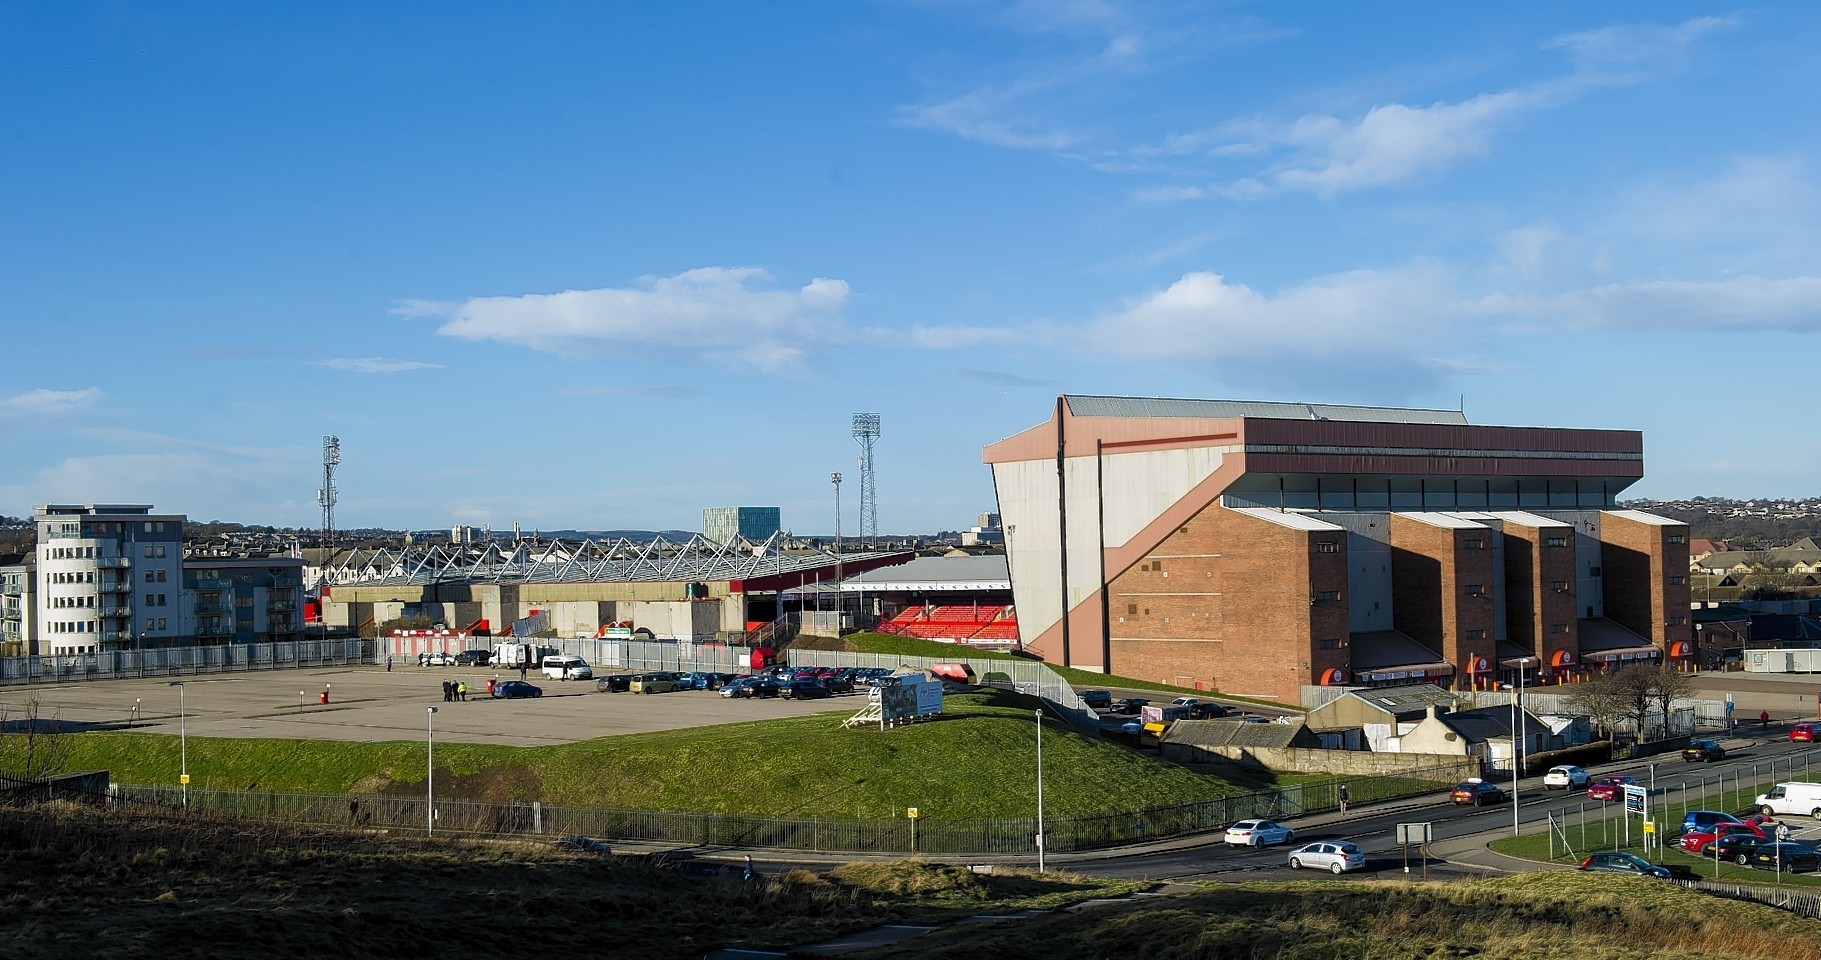 The incident occurred at Pittodrie in March